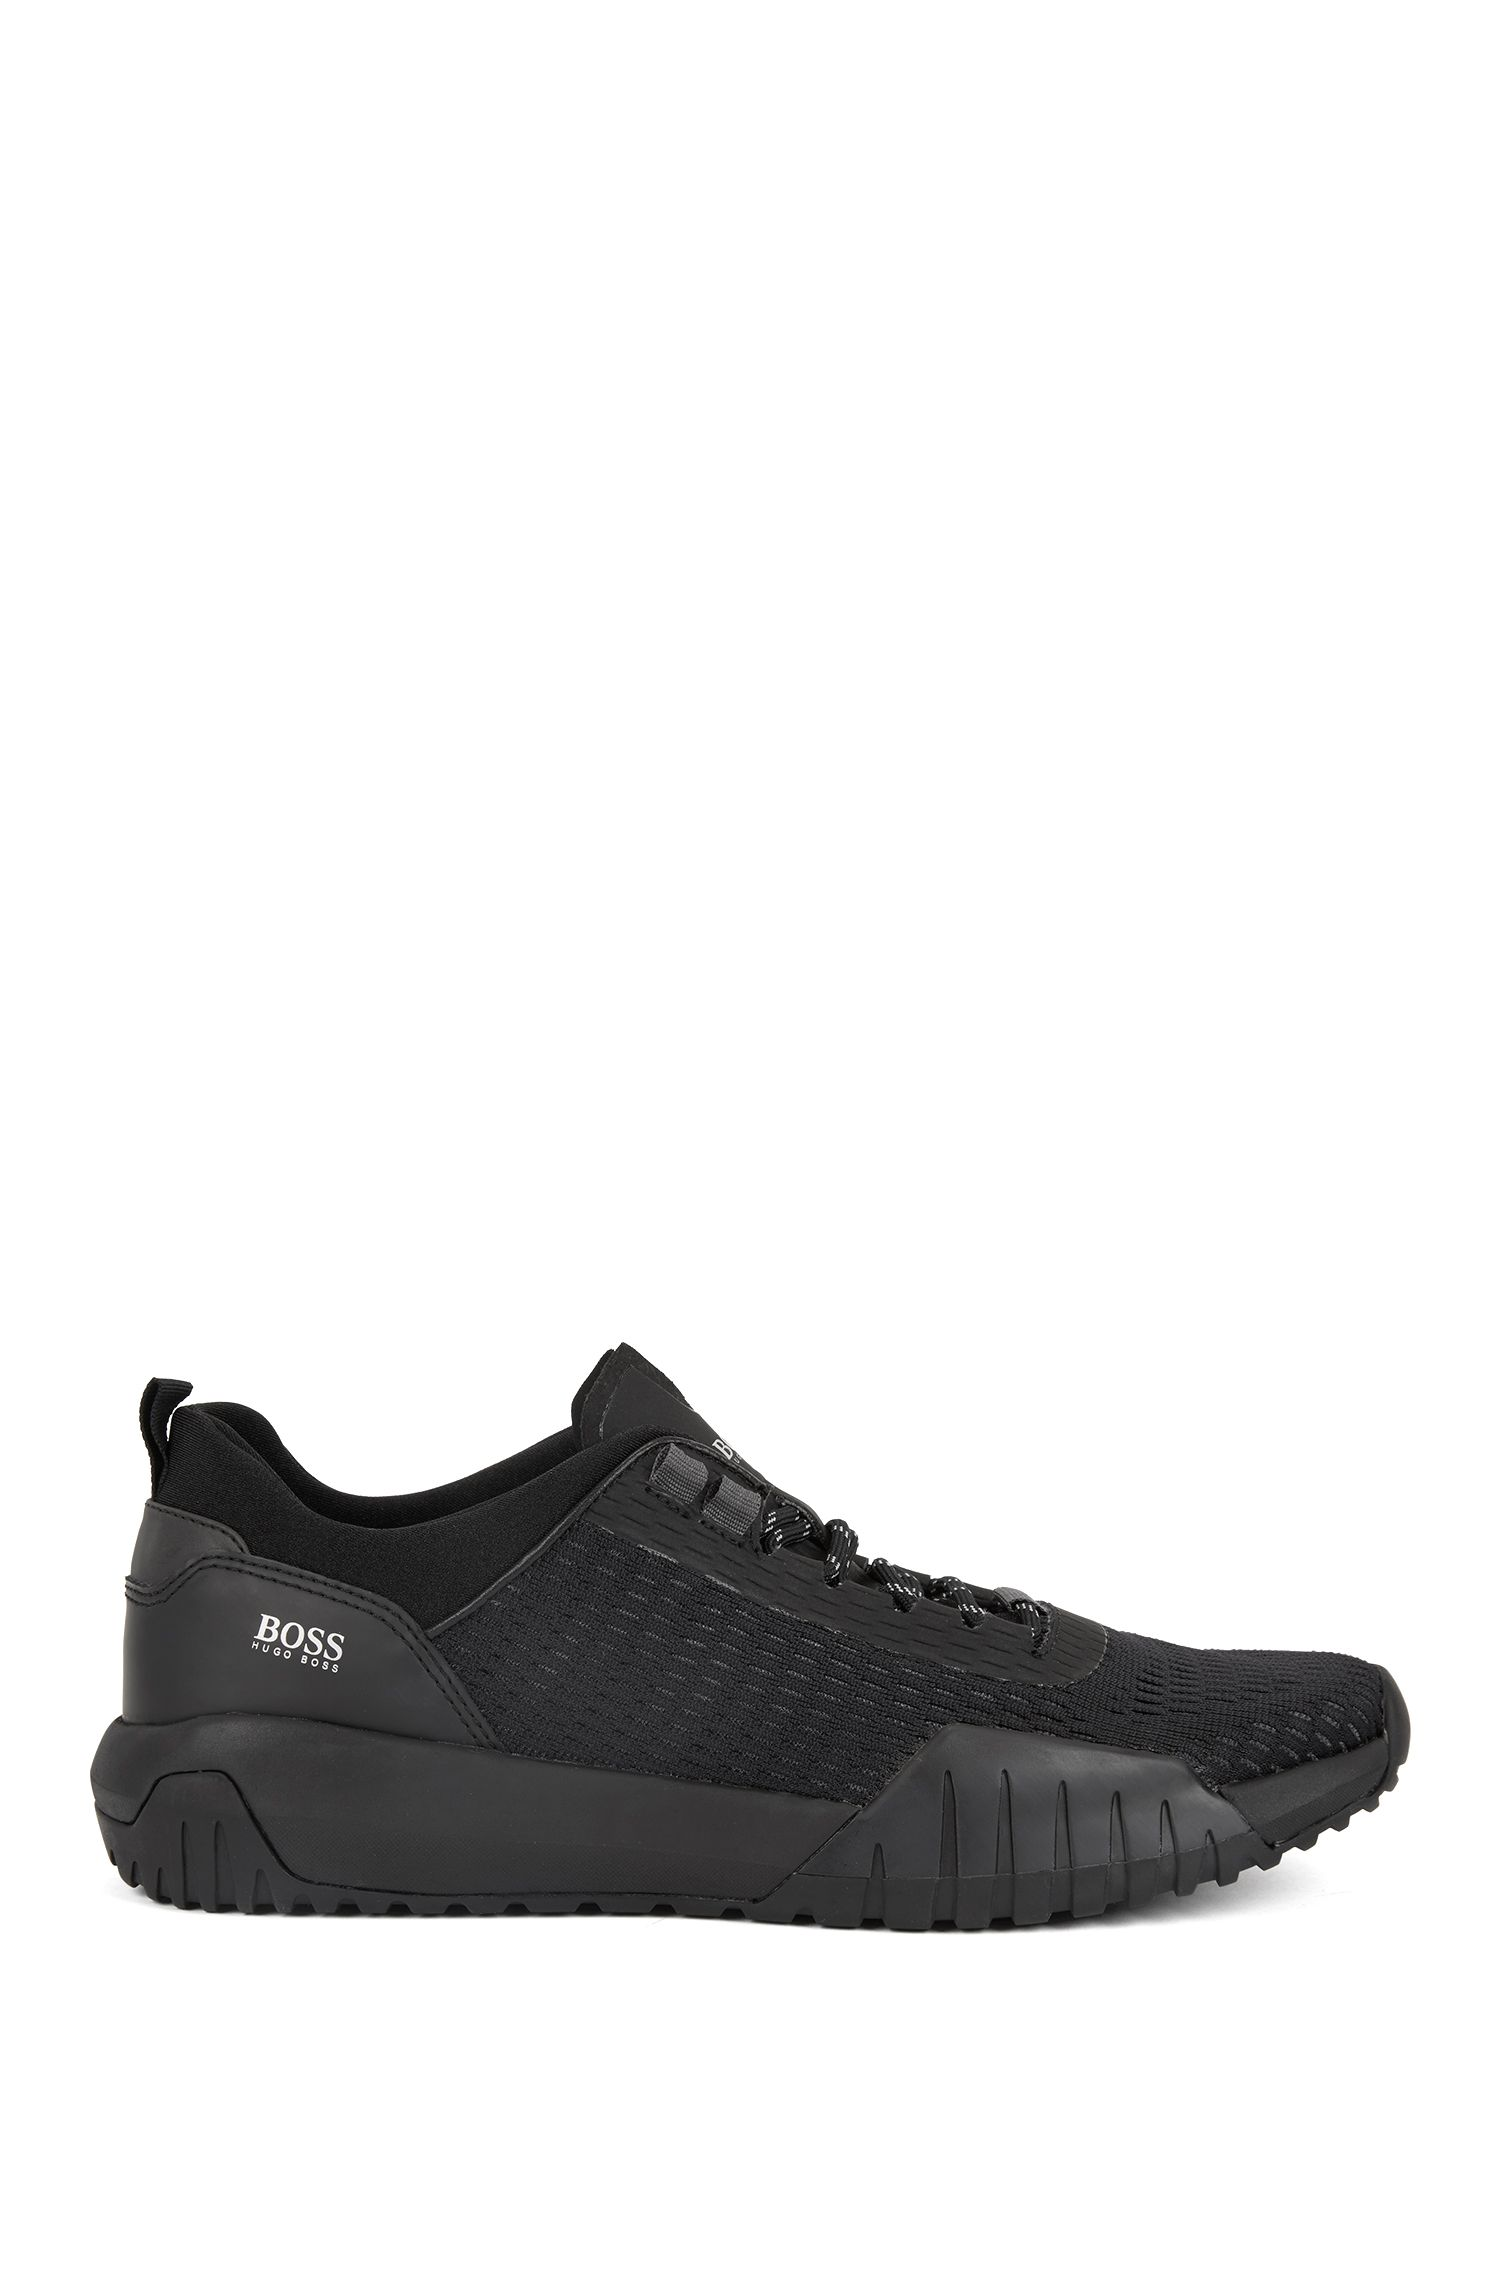 Hugo Boss - Running-inspired trainers with Strobel construction and reflective laces - 1